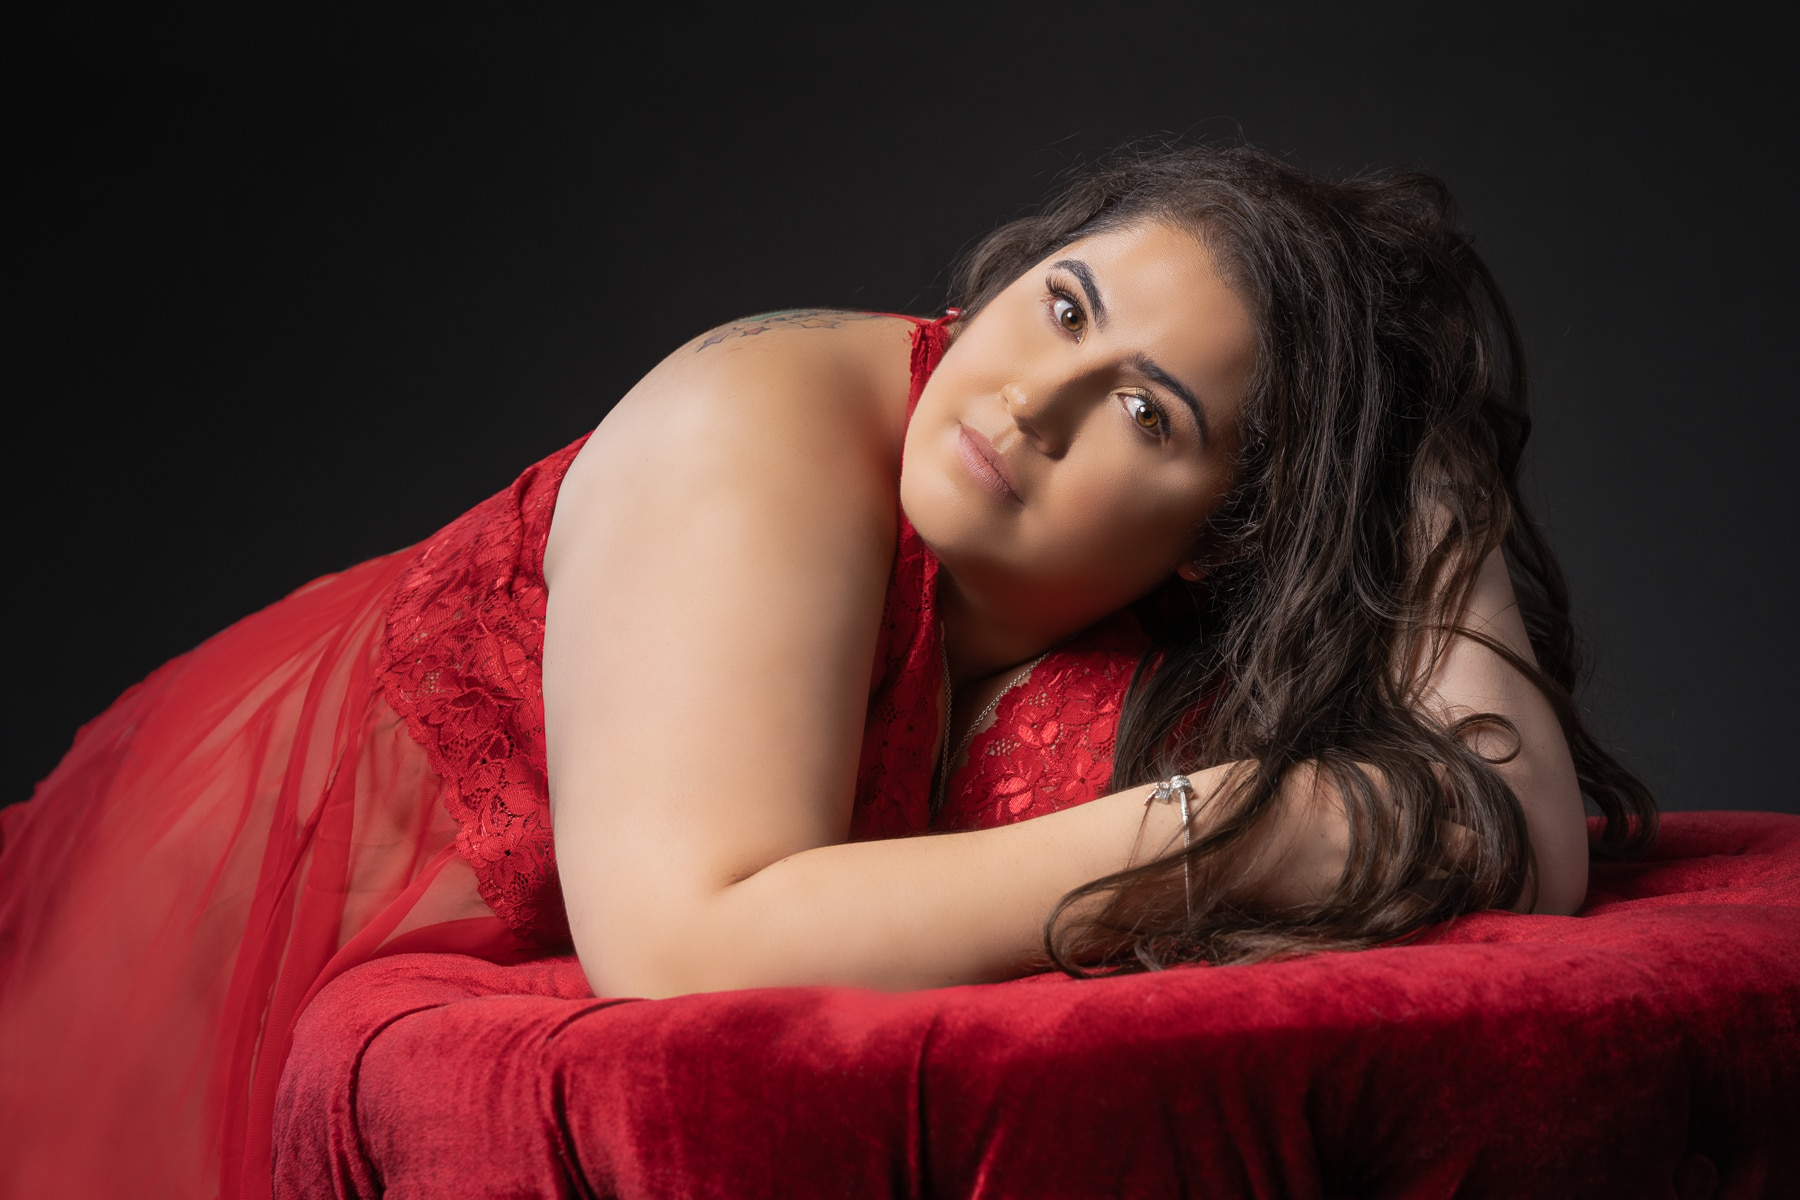 Plus size woman leaning forward in red dress.